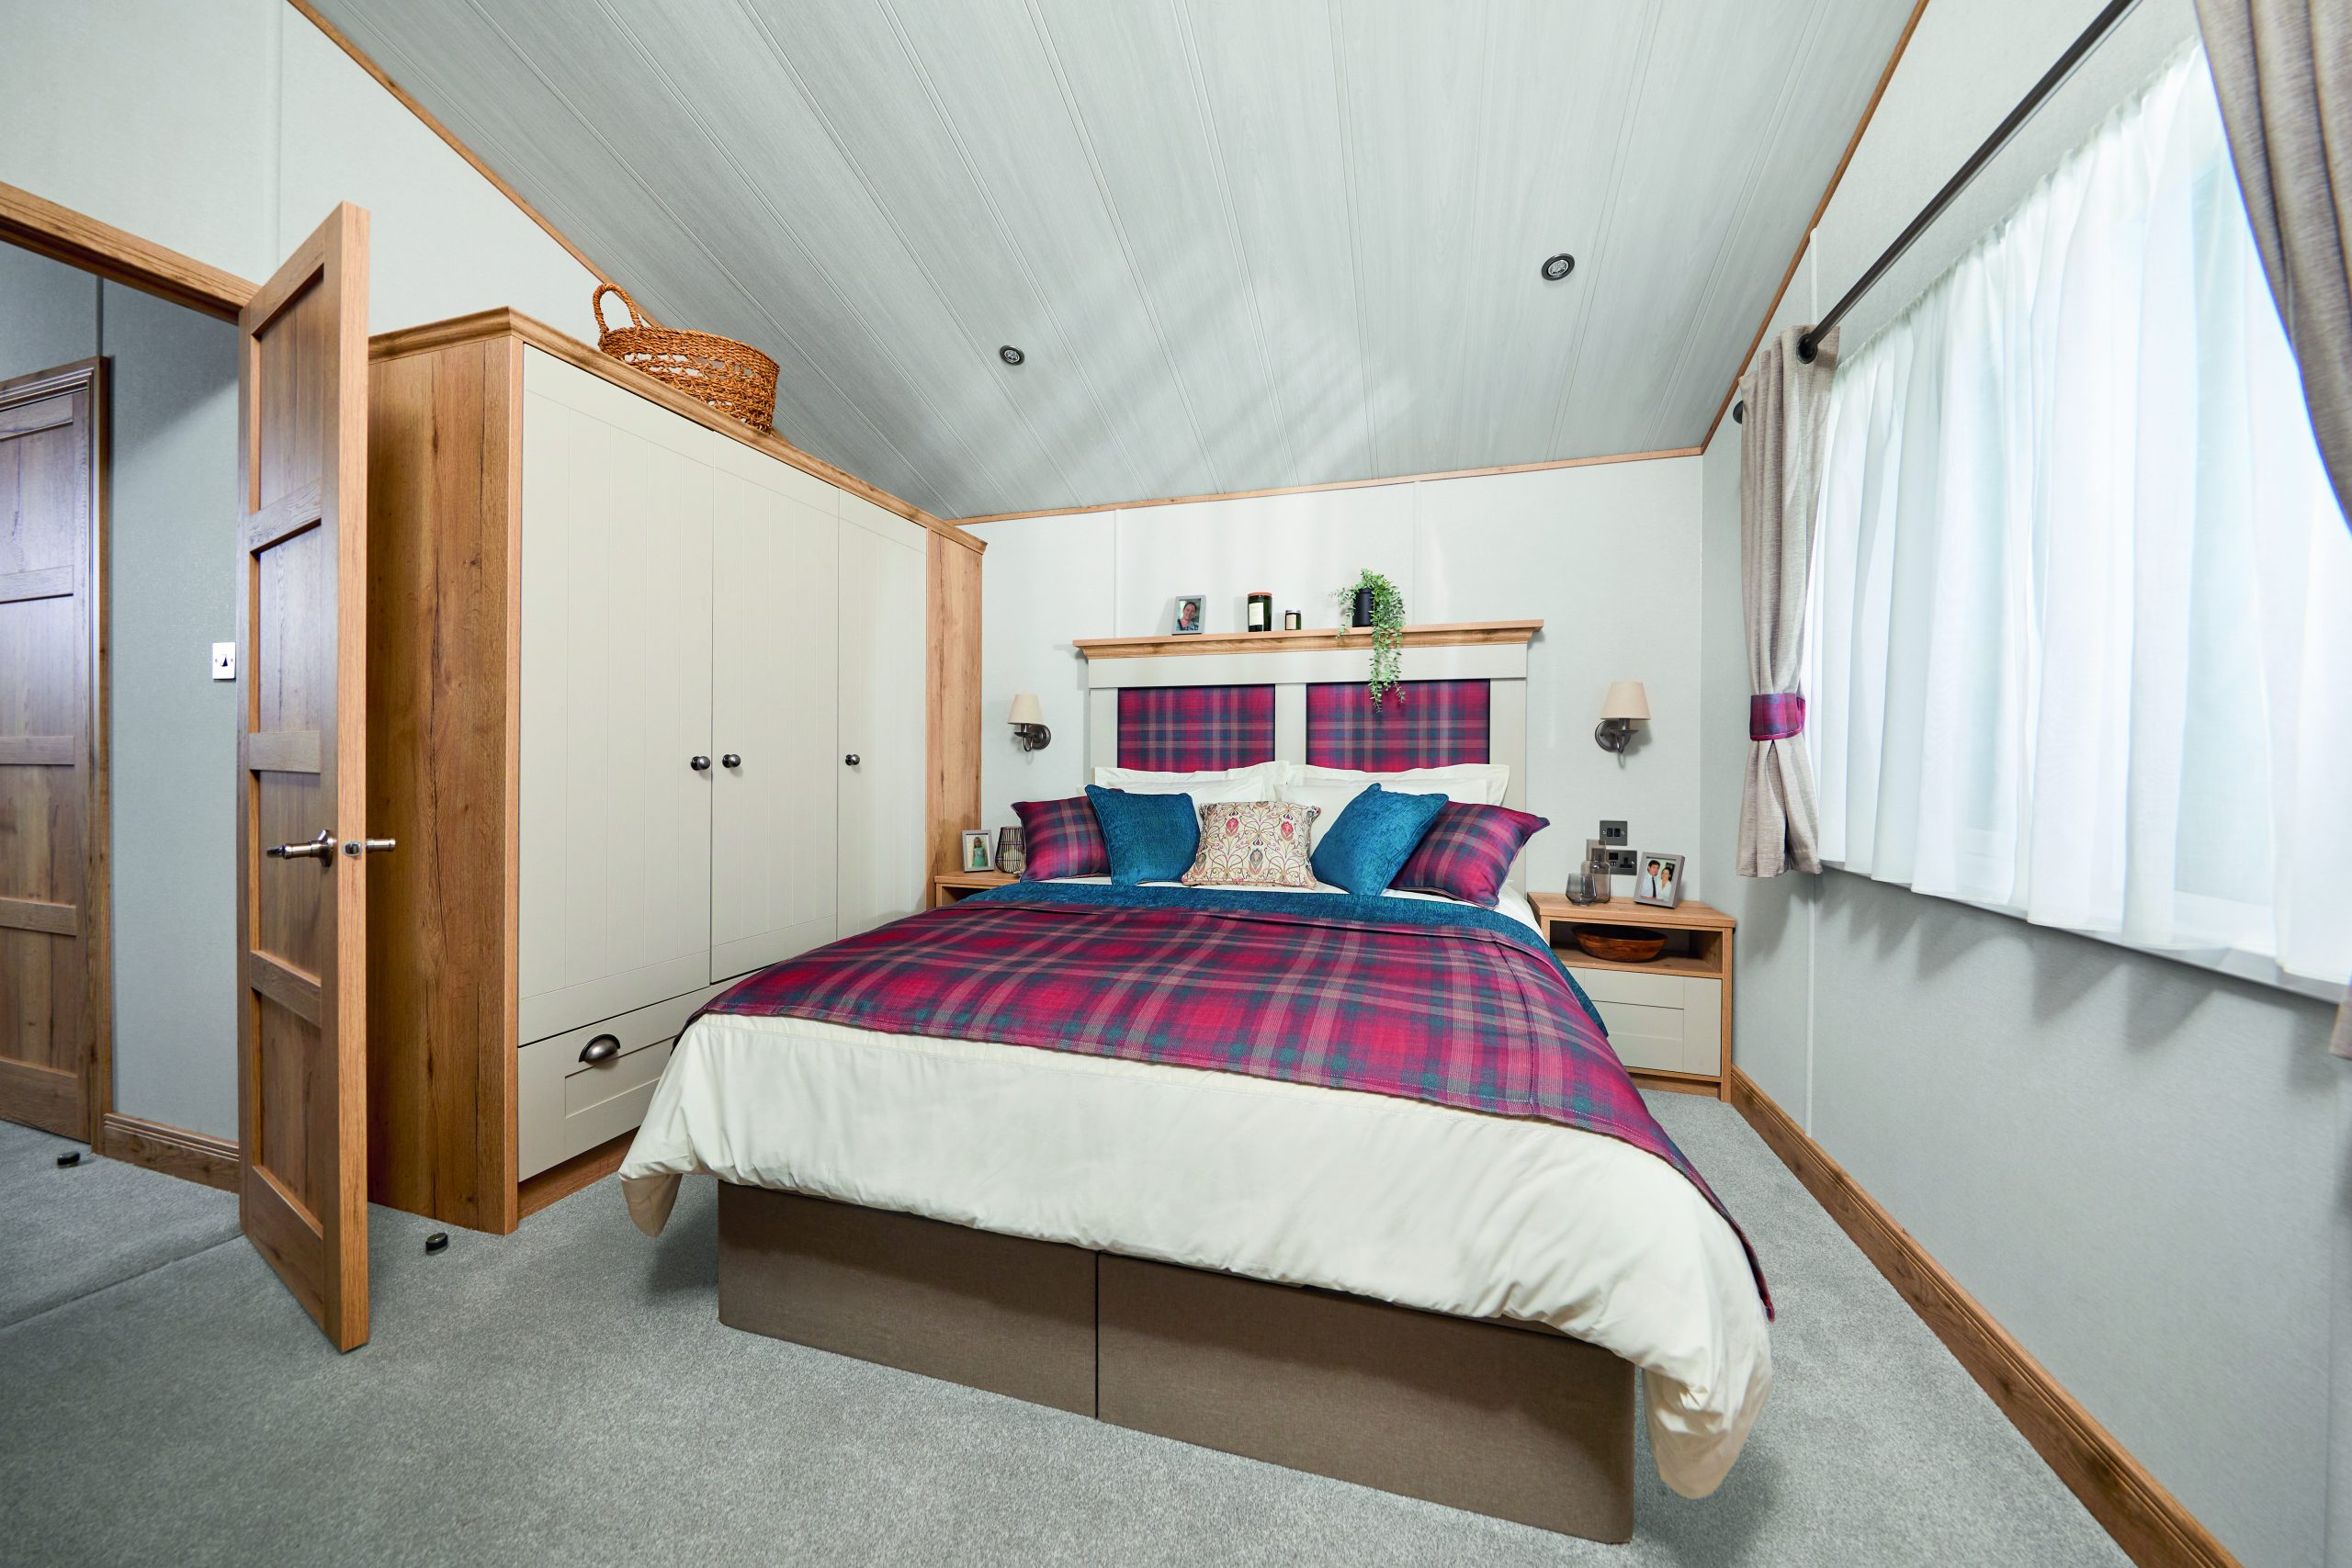 holiday park lincolnshire, holiday cottages lincolnshire, log cabin holidays lincolnshire